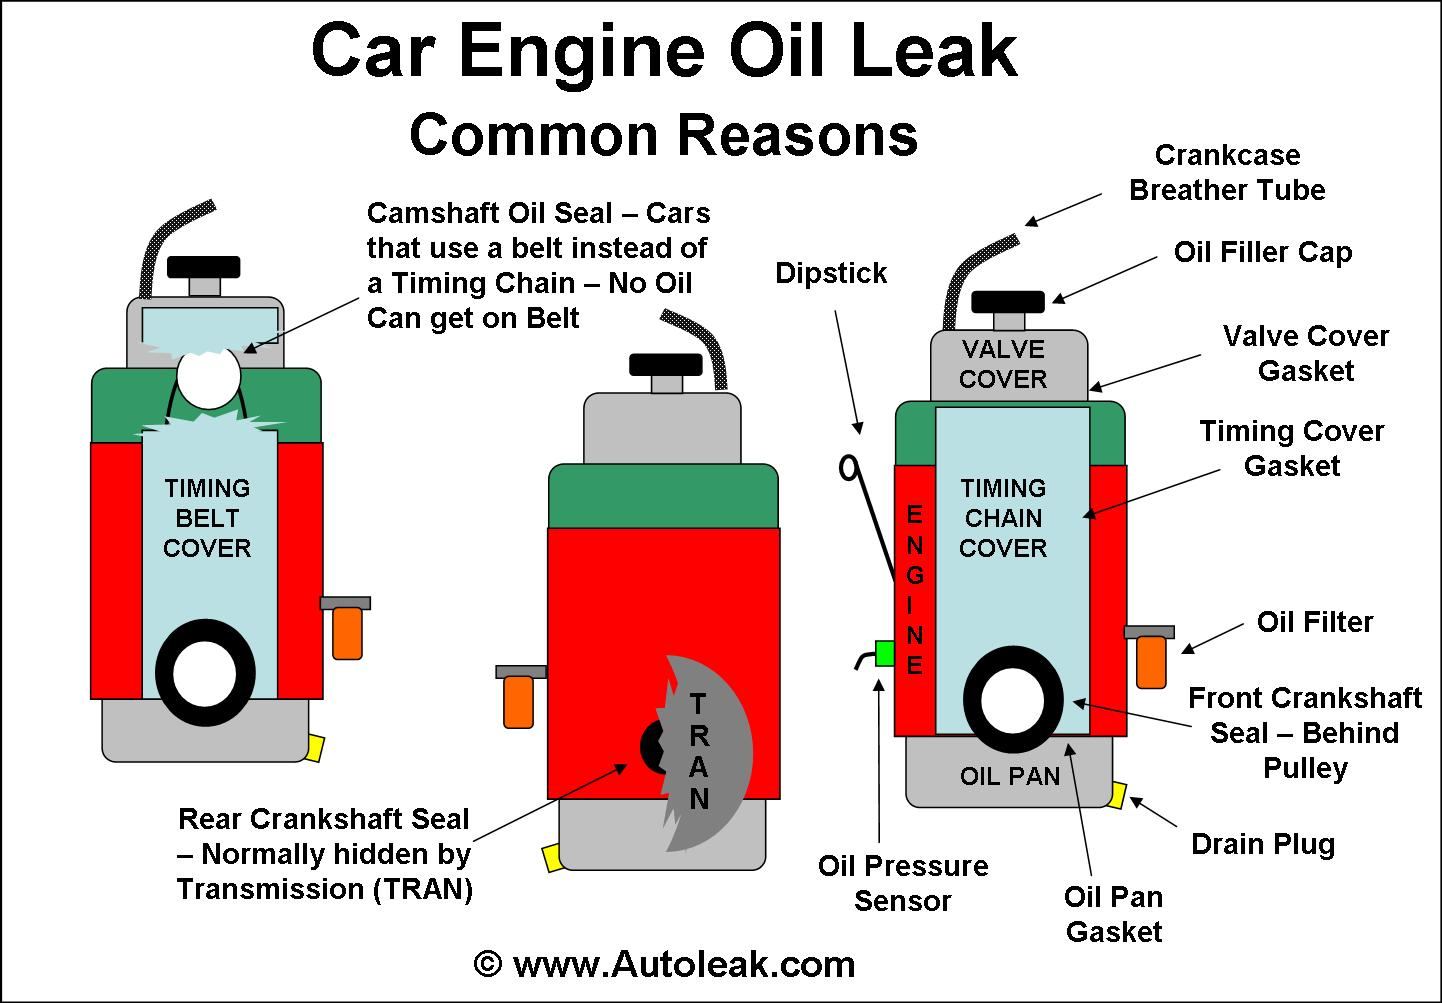 Fix An Oil Leak